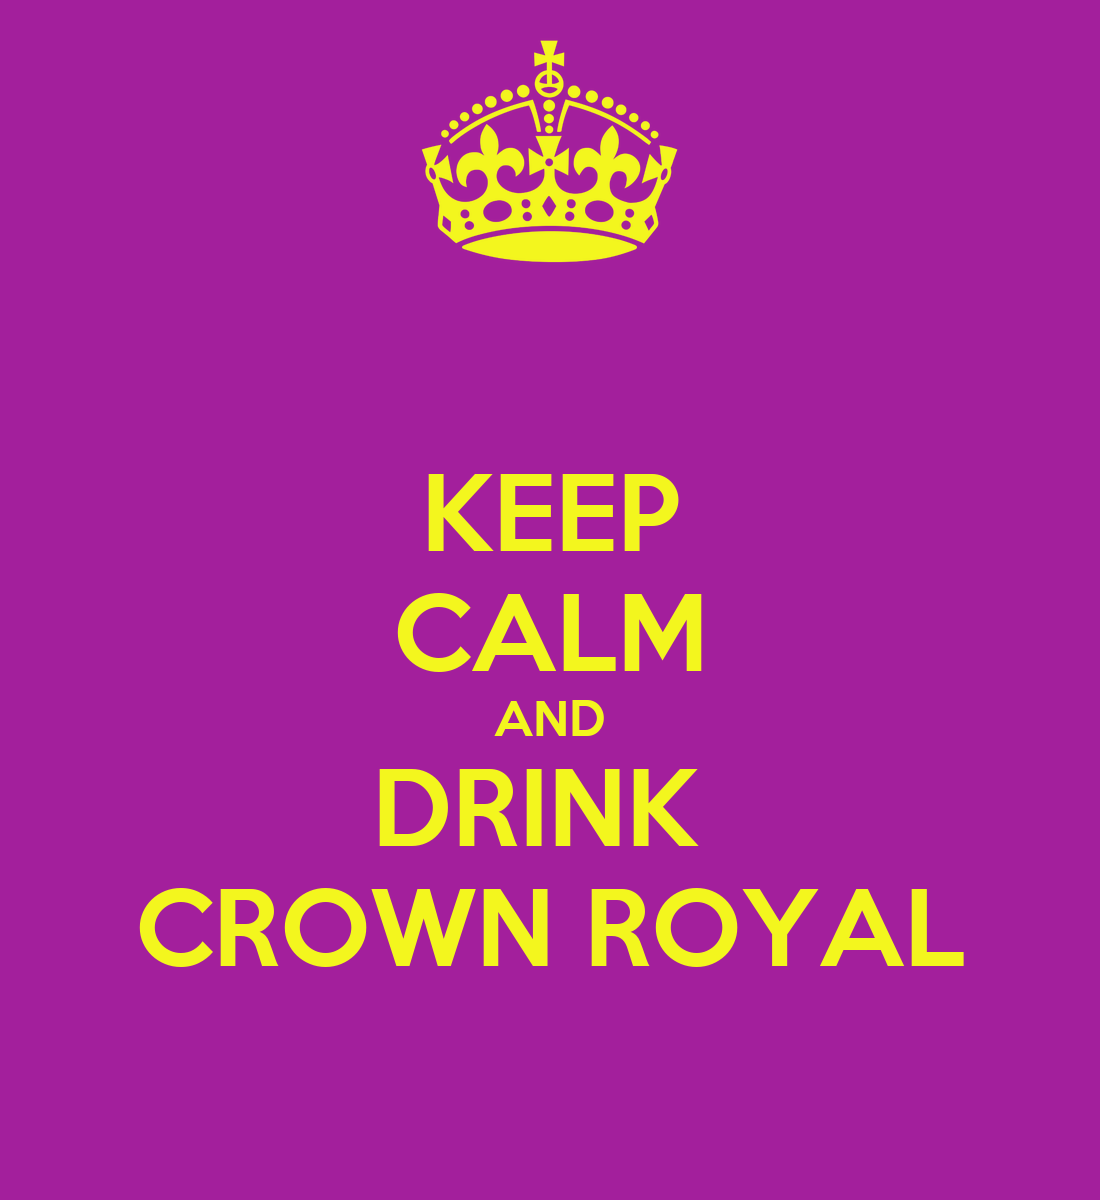 how to drink crown royal